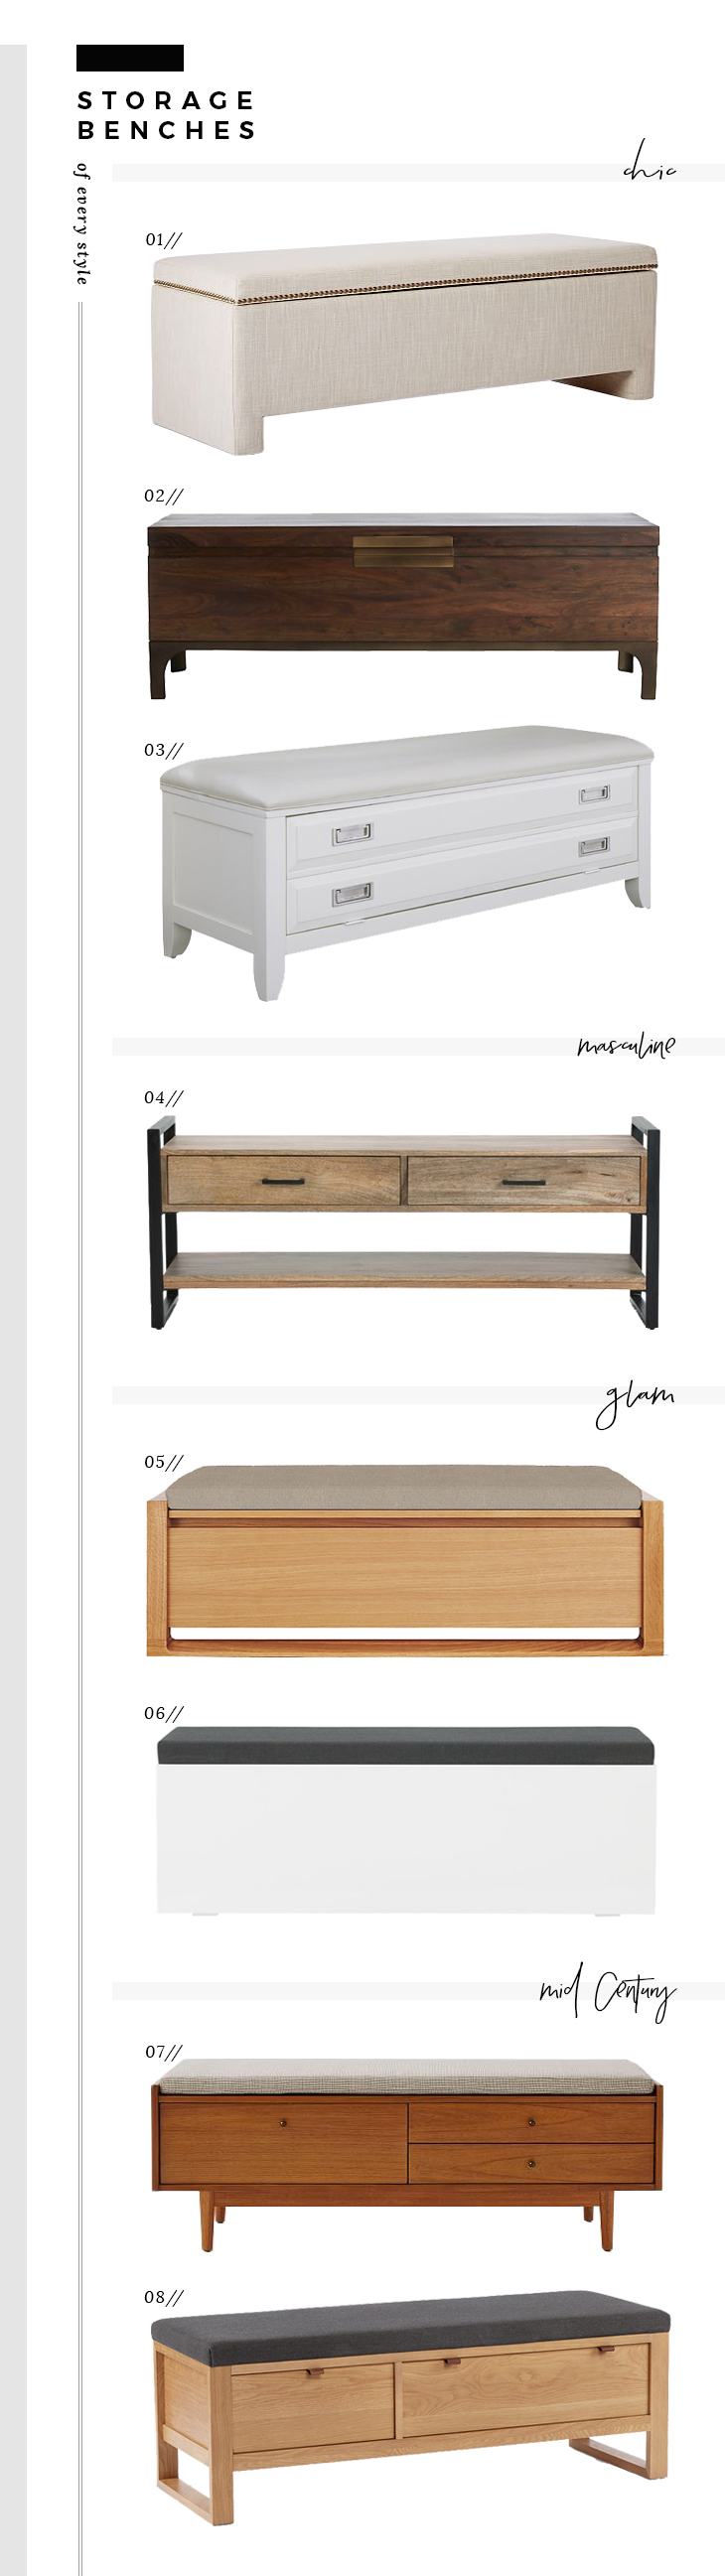 Pleasing Budget Storage Banquette Bench Diy Room For Tuesday Blog Evergreenethics Interior Chair Design Evergreenethicsorg